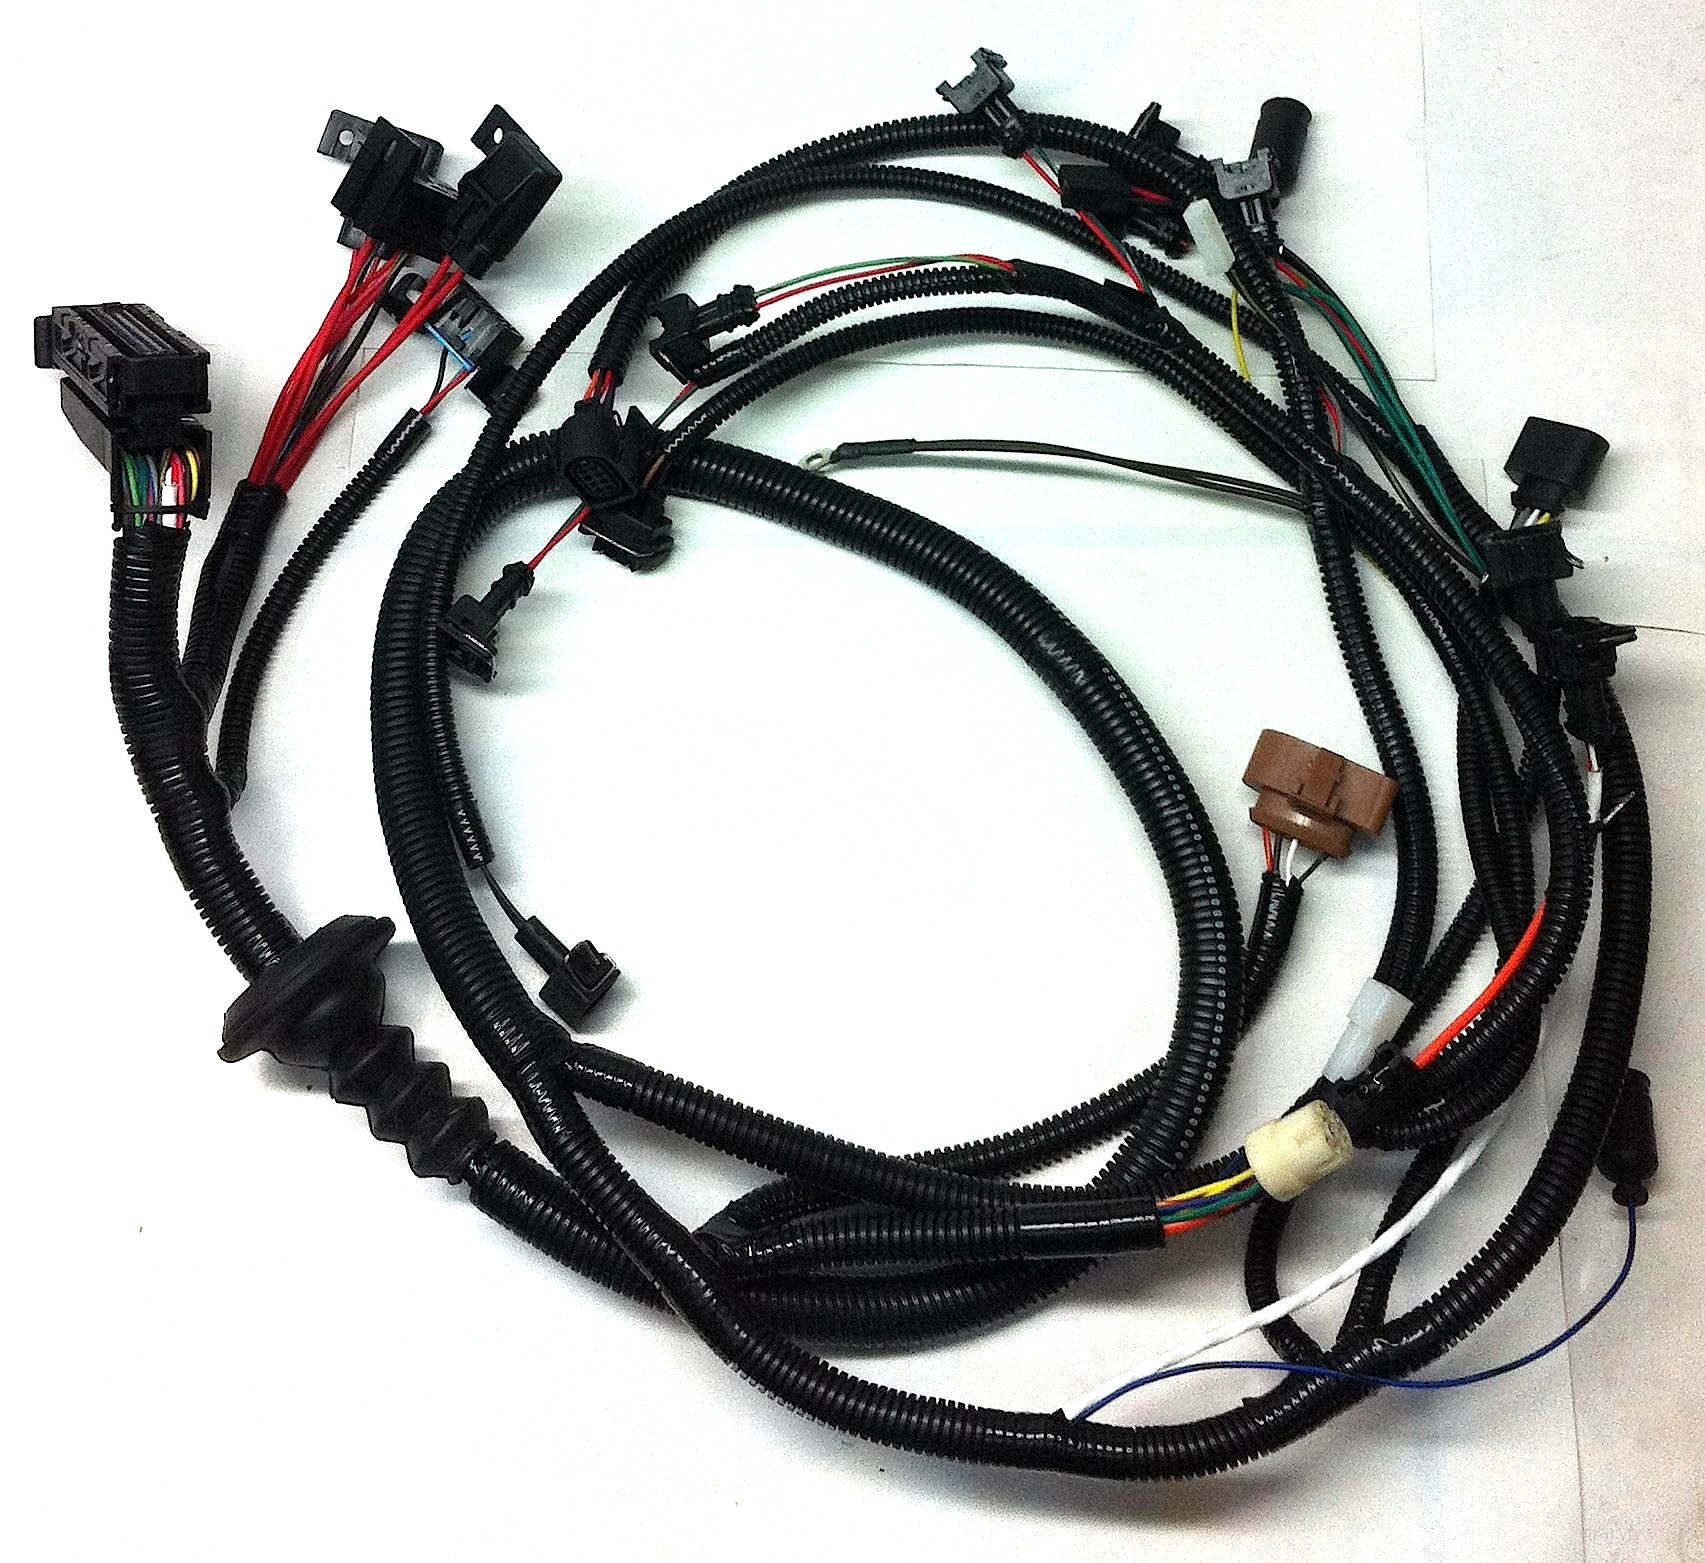 Wiring_Harness_2LR 2lr tiico conversion wiring harness foreign auto & supply, inc tdi swap wiring harness at bakdesigns.co